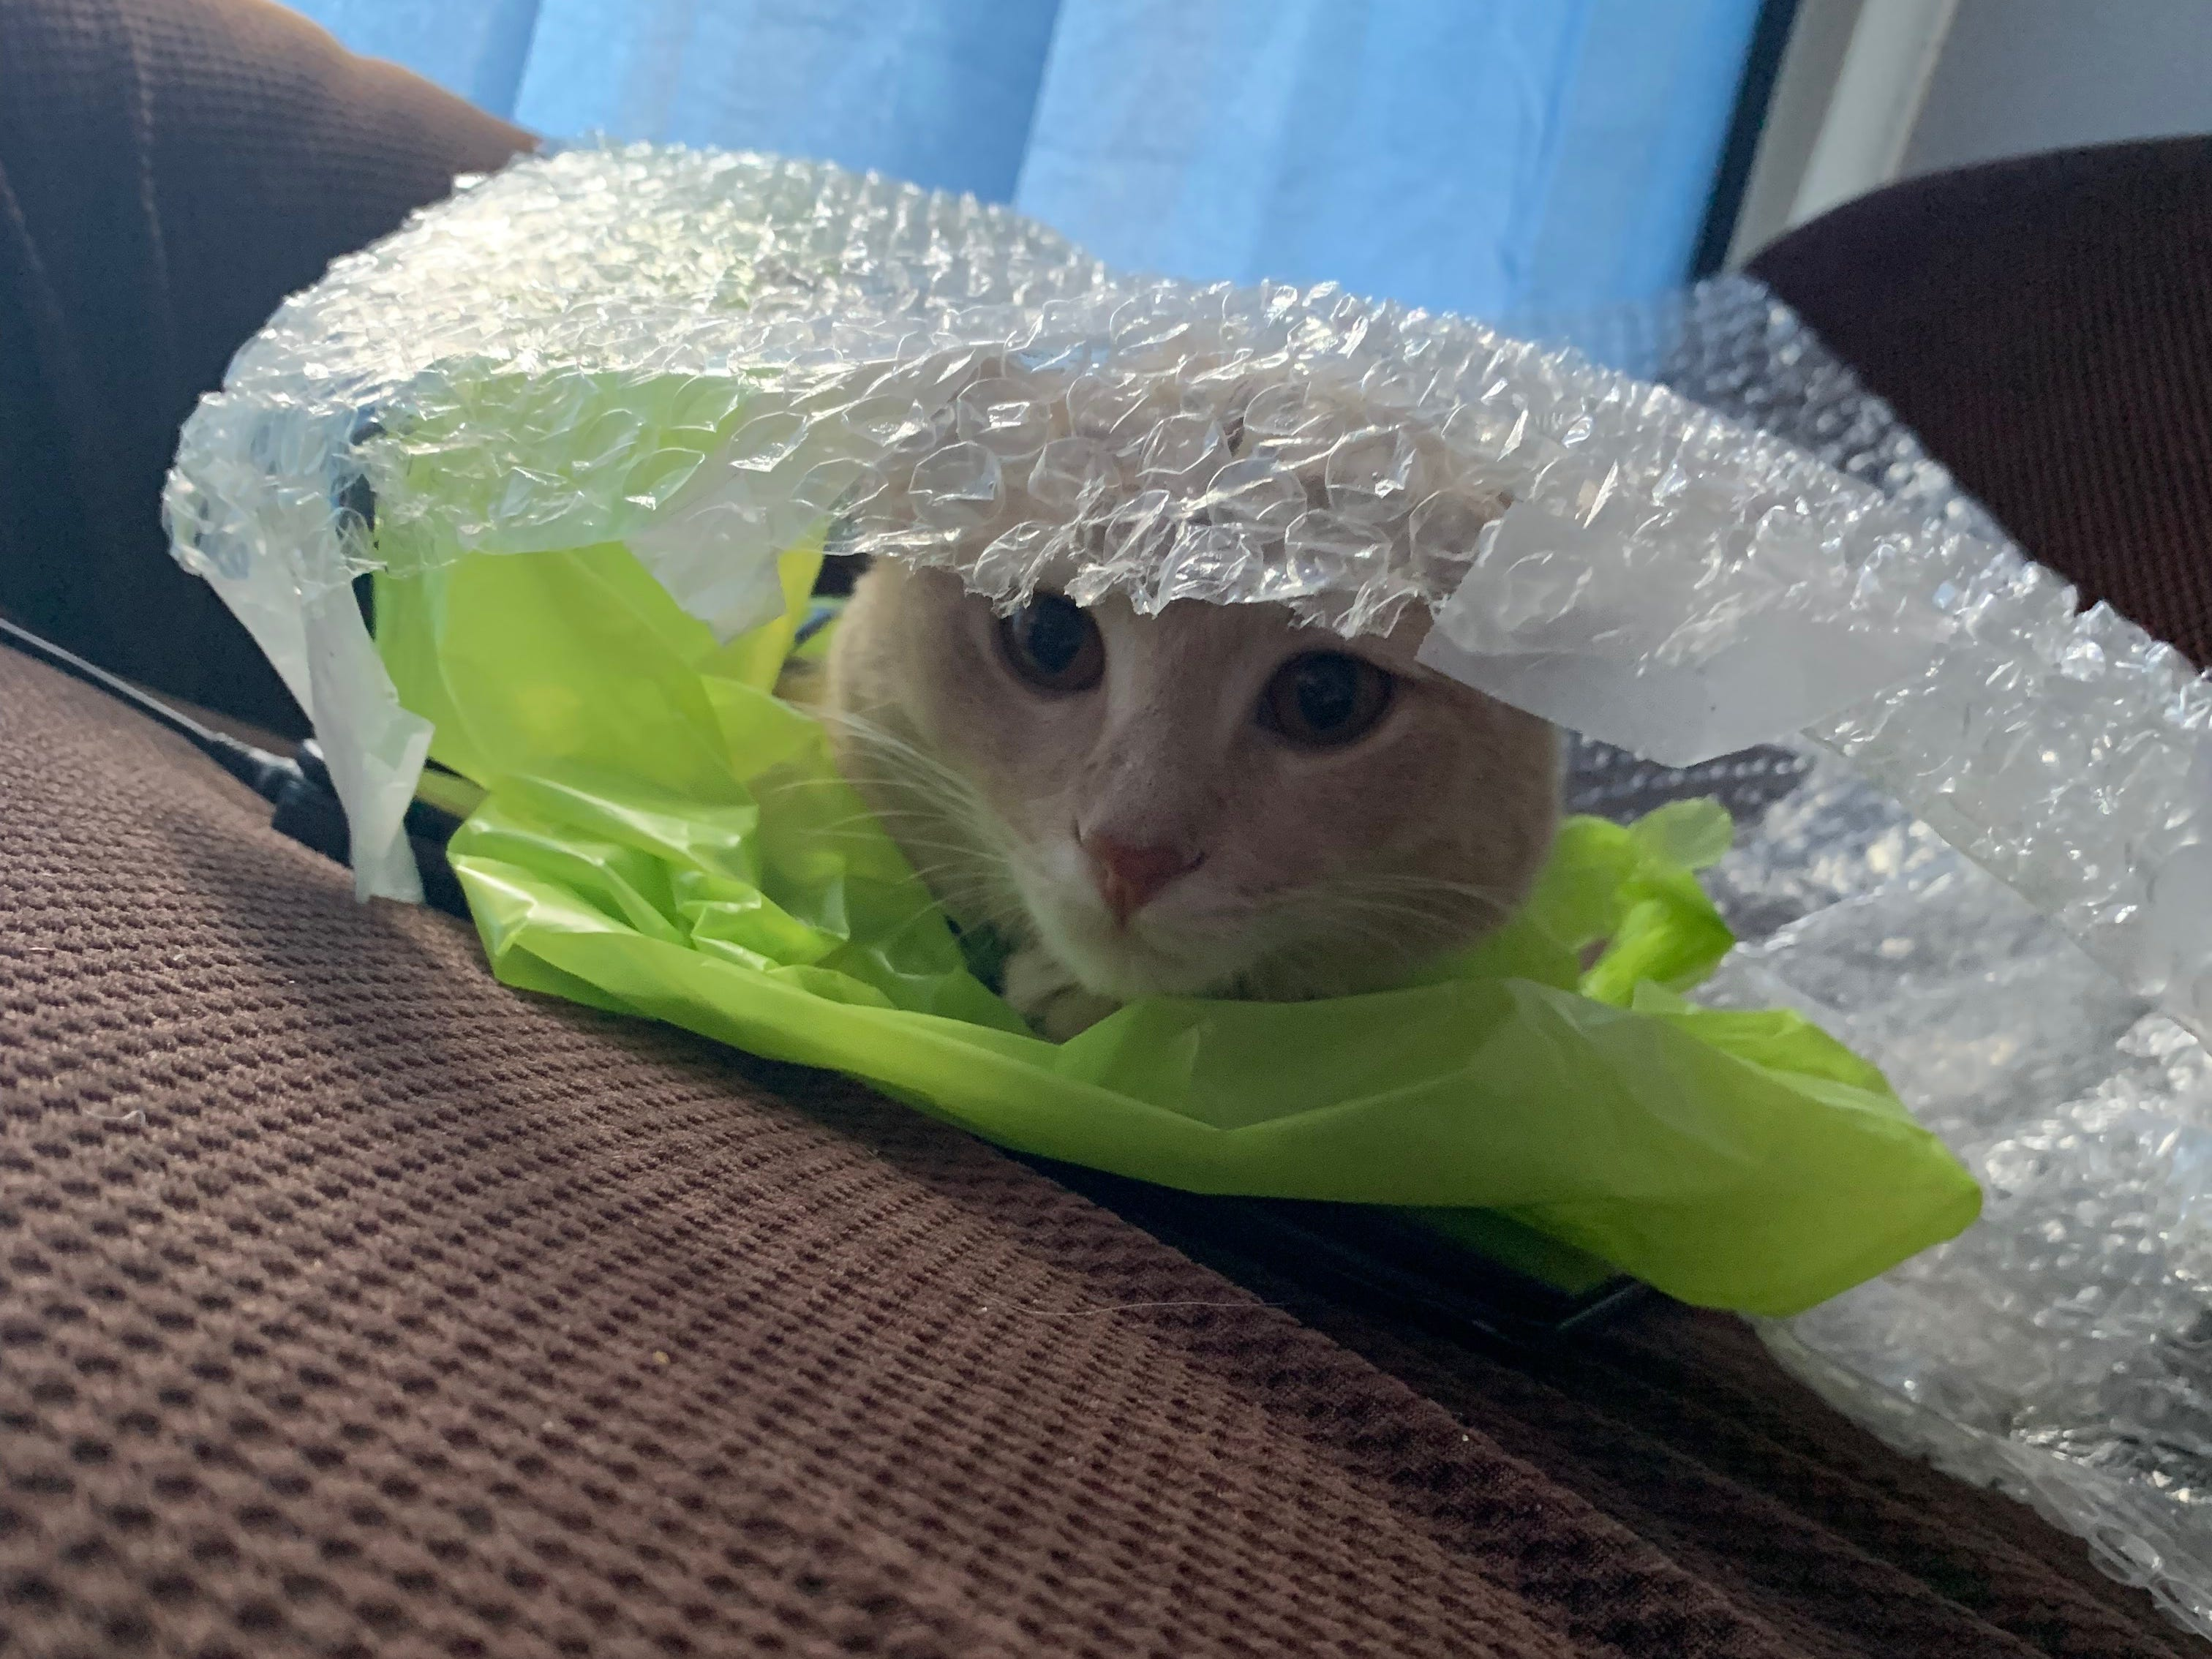 When Peter the cat's friends left a bag and bubble wrap lying on the couch, the young cat decided to make a fort of sorts. Peter belongs to Register breaking news reporter Tyler Davis.